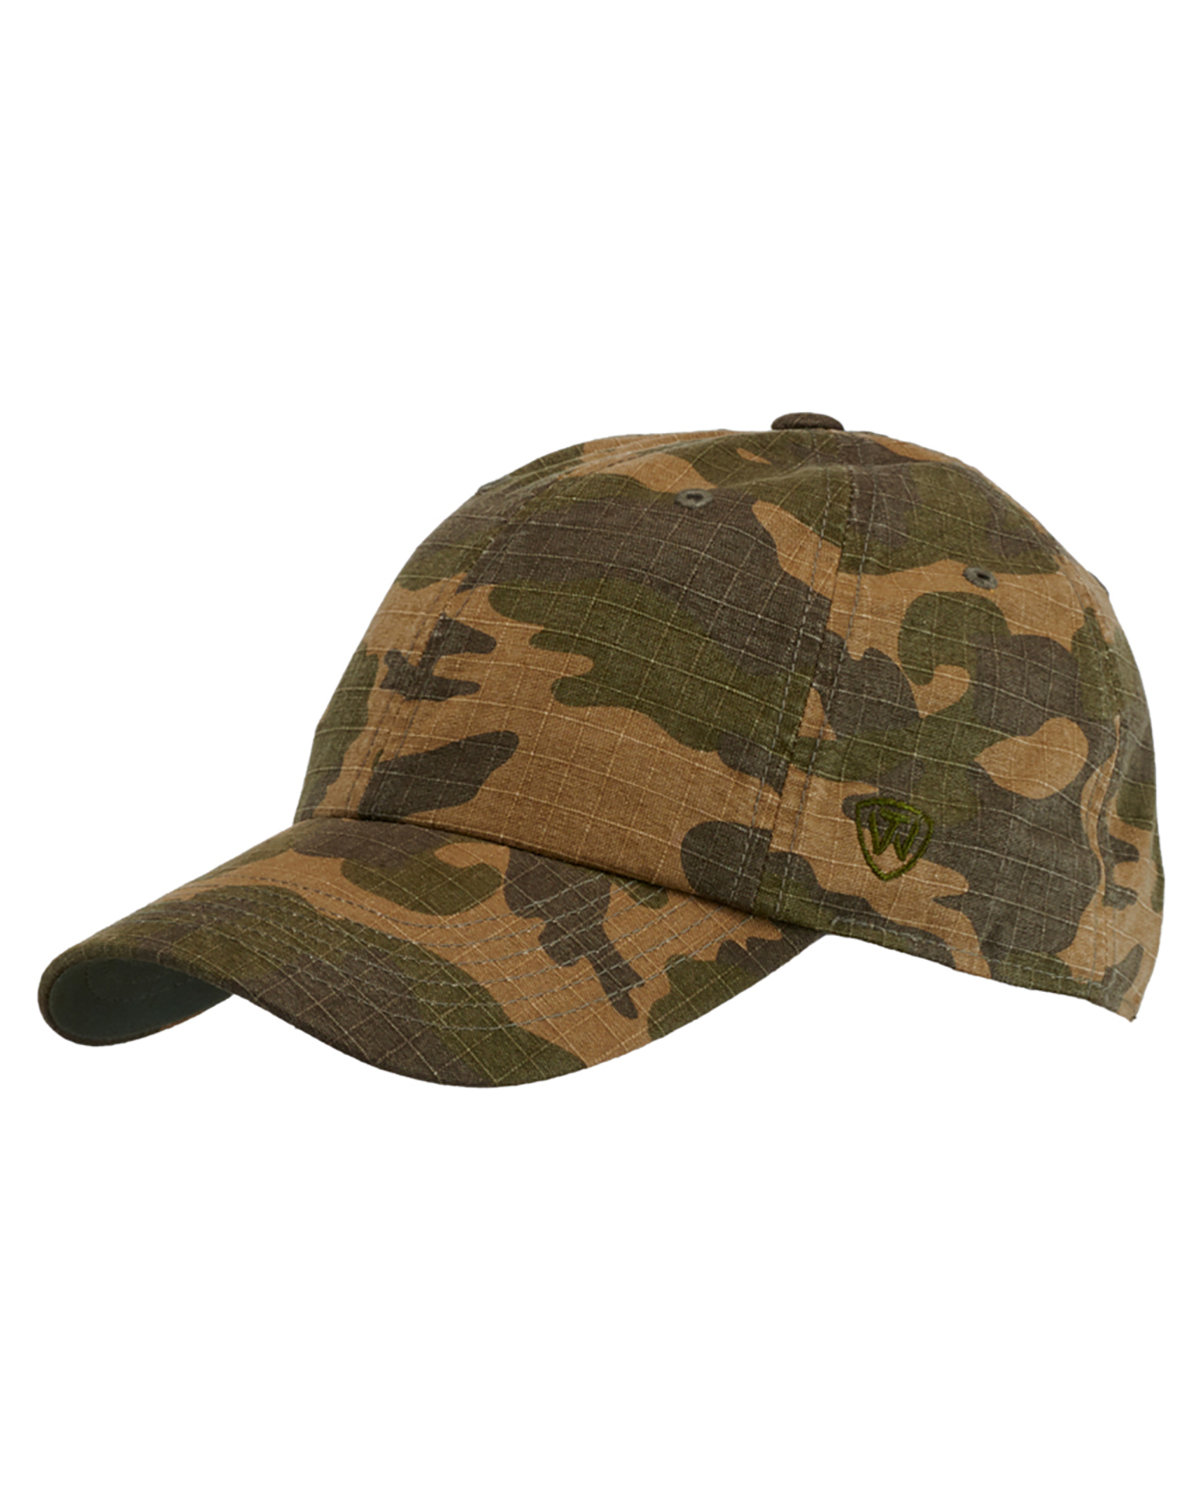 Top Of The World Ripper Washed Cotton Ripstop Hat CAMO